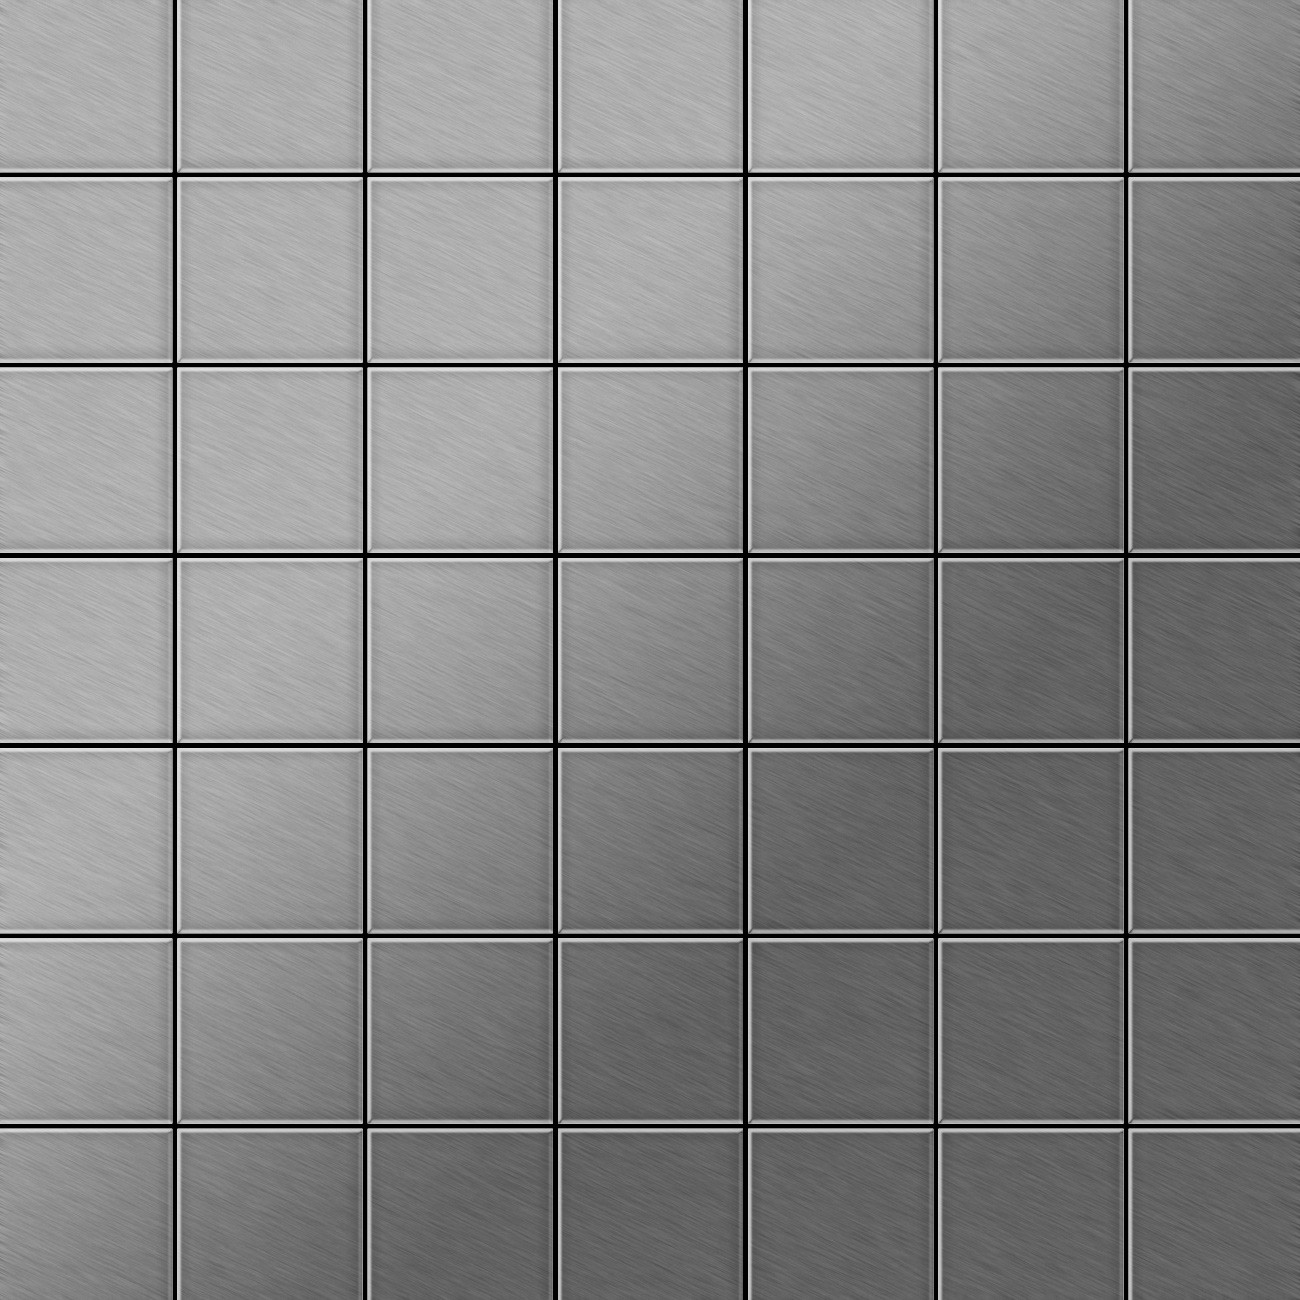 metal mosaic tile stainless steel marine brushed grey 1 6mm attica s s mb ceres webshop